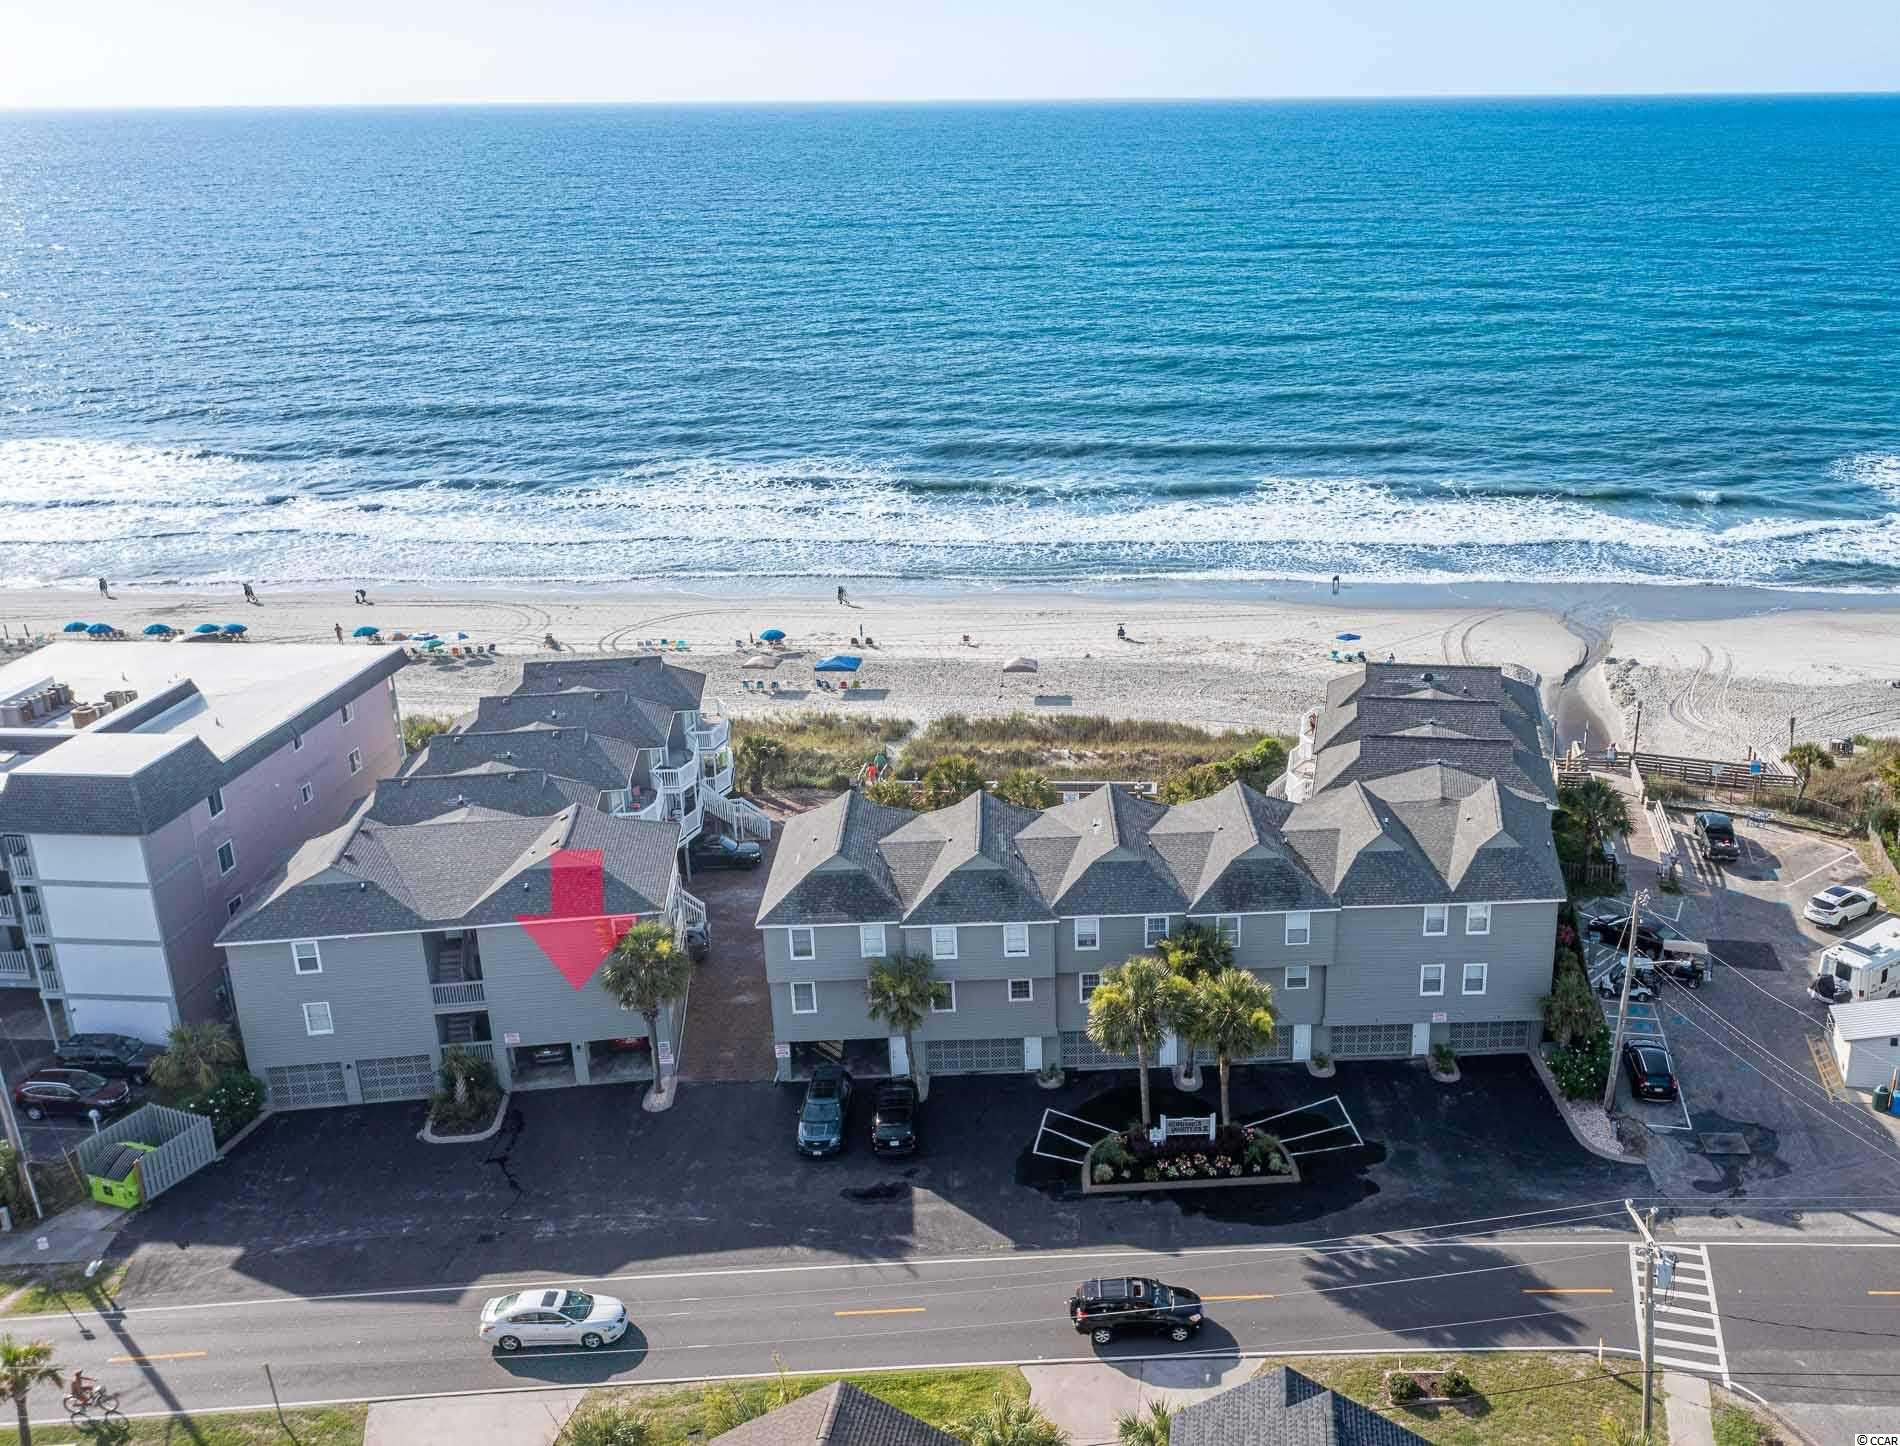 """You've Been Waiting....And It Is Finally Here...Your ONLY CHANCE To Own A Condo On The Ocean In Surfside Beach Today!  This 3 Bedroom, 2.5 Bath Corner Unit Is 1300+ S/F & Features Ocean Views And The Rare Amenity of A PRIVATE TWO CAR GARAGE.  The Ability To Store A Golf Cart or Motorcycle On The Oceanfront Is EXTREMELY RARE.  There Are Also Multiple Storage Closets/Areas On Ground Level.  Admiral's Quarters II Is A Great Complex in Popular Surfside Beach - the """"Family Beach"""" - Which Boasts A Large Pool Area, & HOA Fee That Covers The Typical Amenities/Utilities, Except Unit Electric & HO-6 Insurance.  Sold Furnished.  Updates Include Quartz Countertops, All Solid Flooring, Remodeled Baths.  This Well Maintained Condo Is Also A Turn-Key Rental Property...Use It Some & Have The Renters Pay For Your Beach Getaway!  The Town of Surfside Beach Offers Tons of Benefits Including Its Own Police, Fire, Storm Water Maintenance, Street Cleaning, Debris Removal, Trash/Recycling, Community Events Like Farmer's Market, Parades, Festivals, Luaus & More. Measurements & Sq. Footage Approximate."""